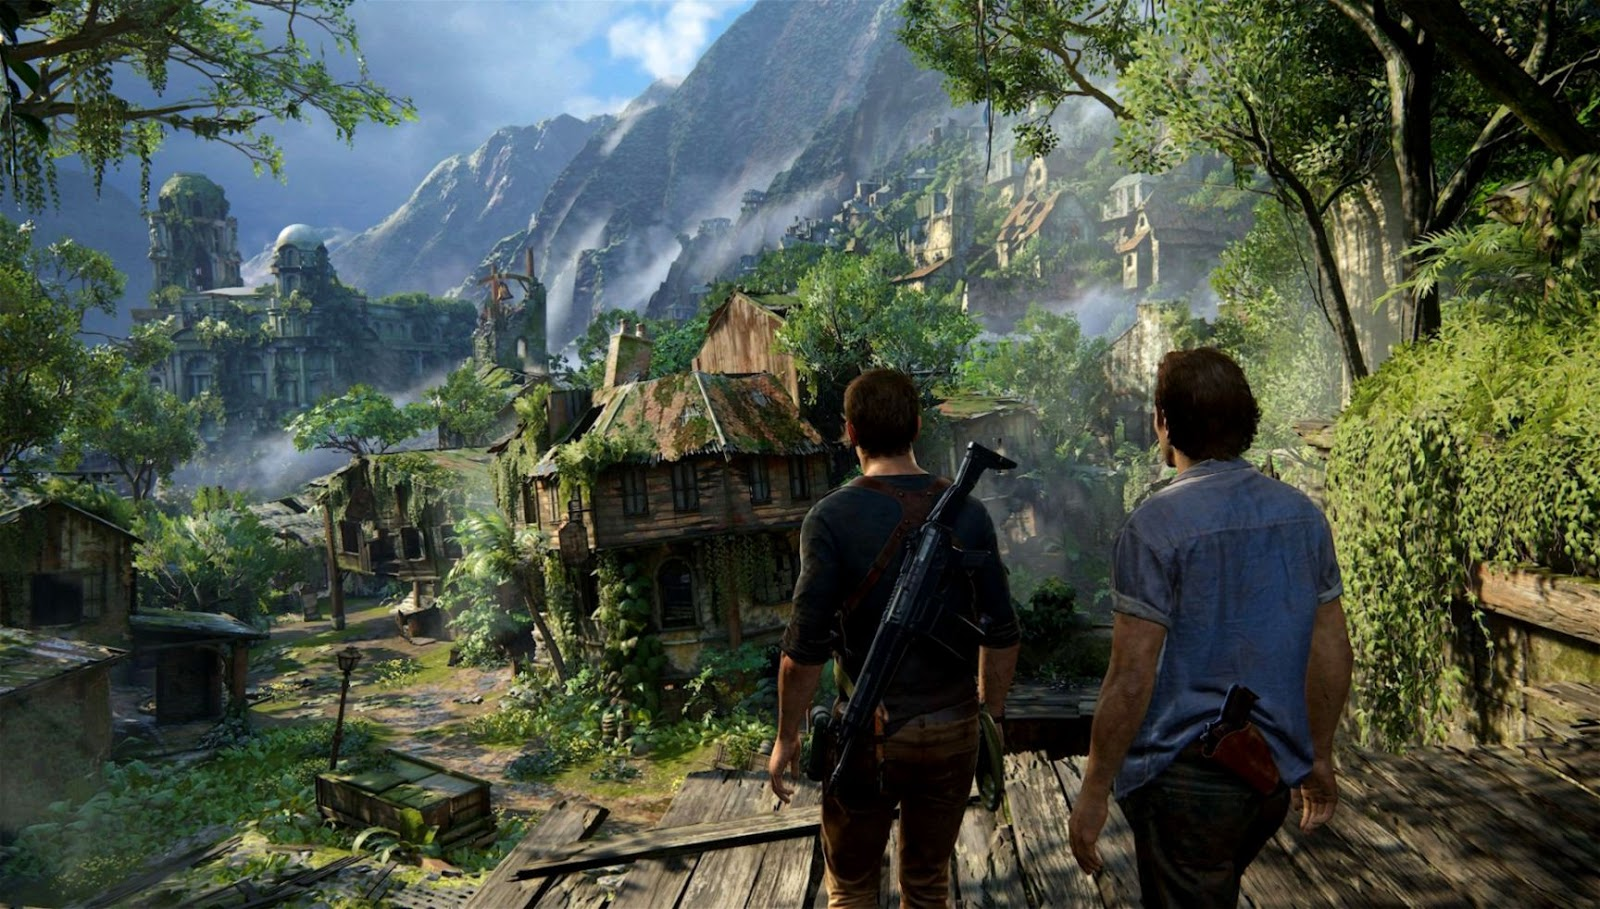 Uncharted Games Hd Wallpaper Wallpapers Galery